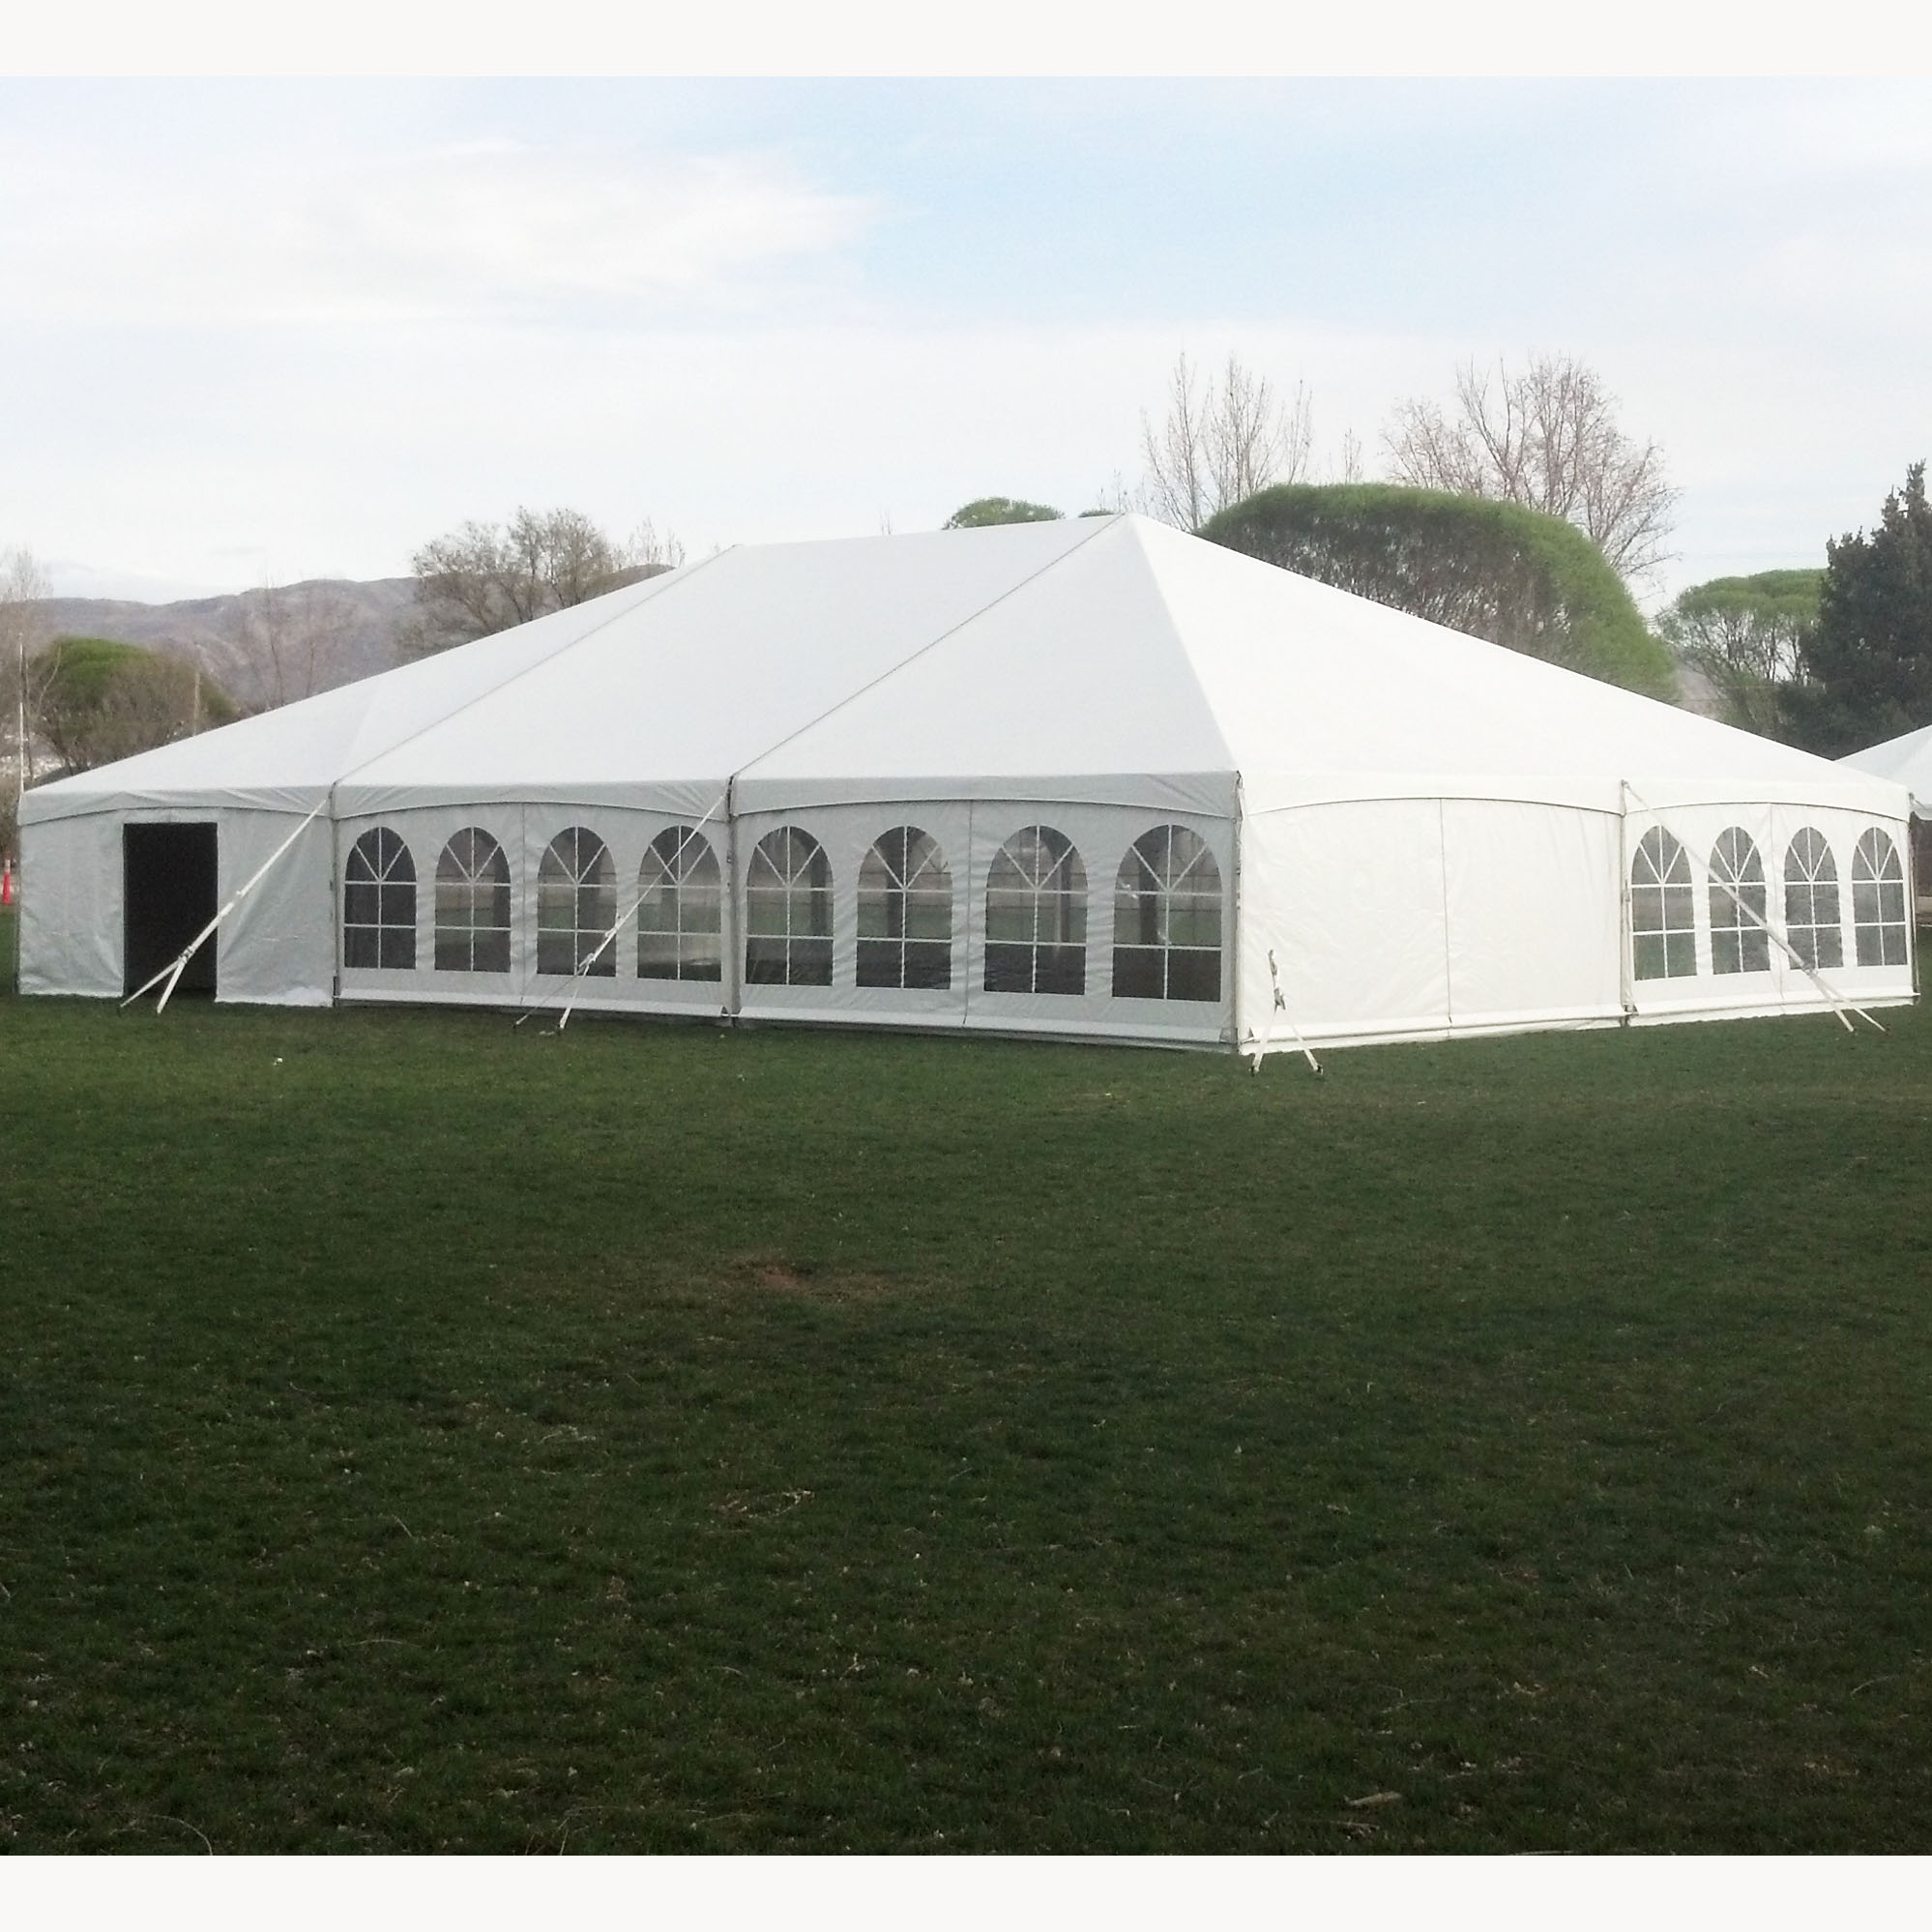 exterior-wonderful-canopy-tent-with-walls-alluring-outdoor-. exterior-wonderful-canopy-tent-with-walls-alluring-outdoor- & Professional Setup - American Party RentalAmerican Party Rental